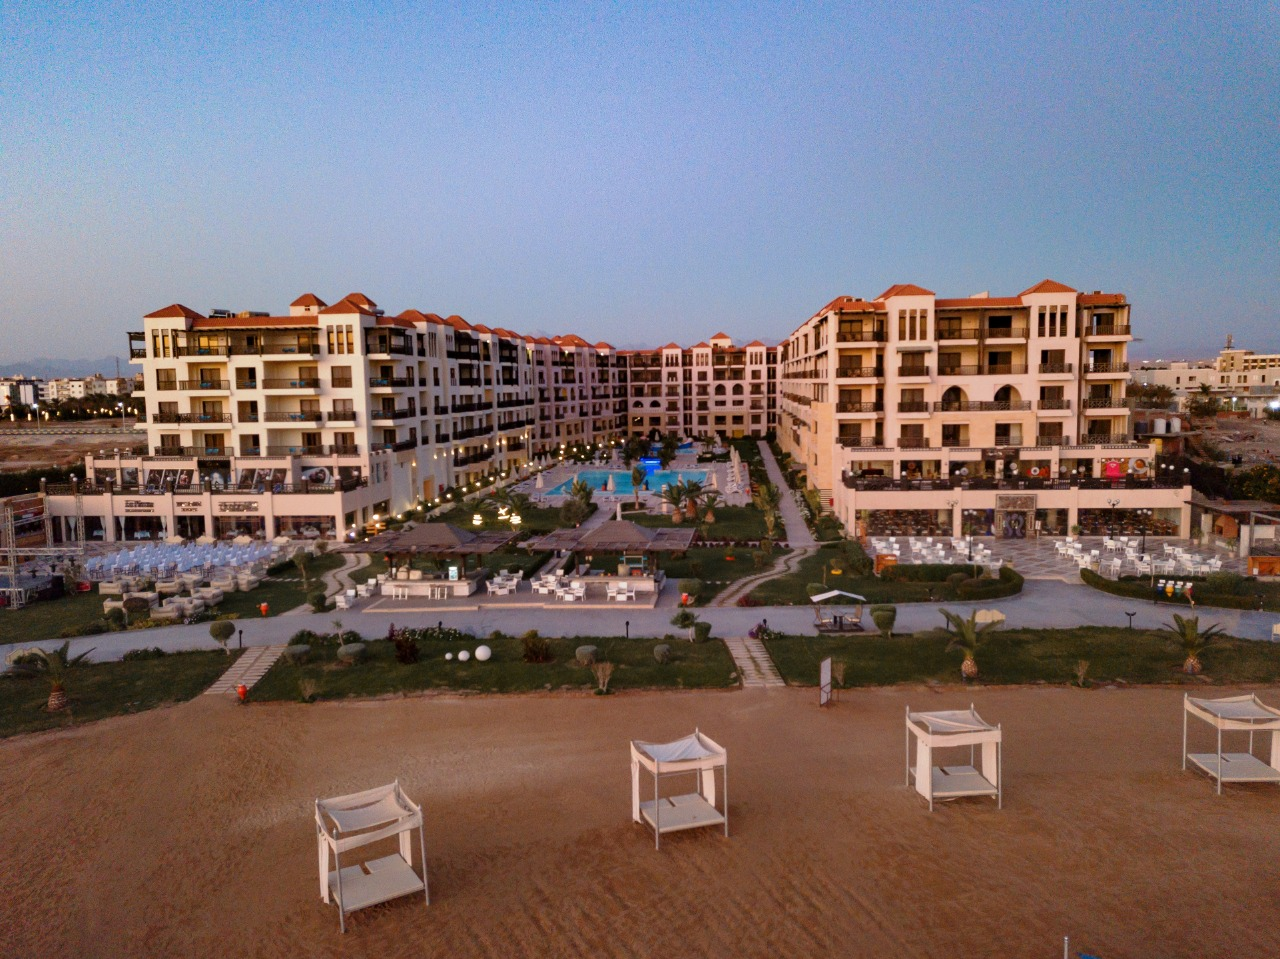 SAMRA BAY HOTEL & RESORT